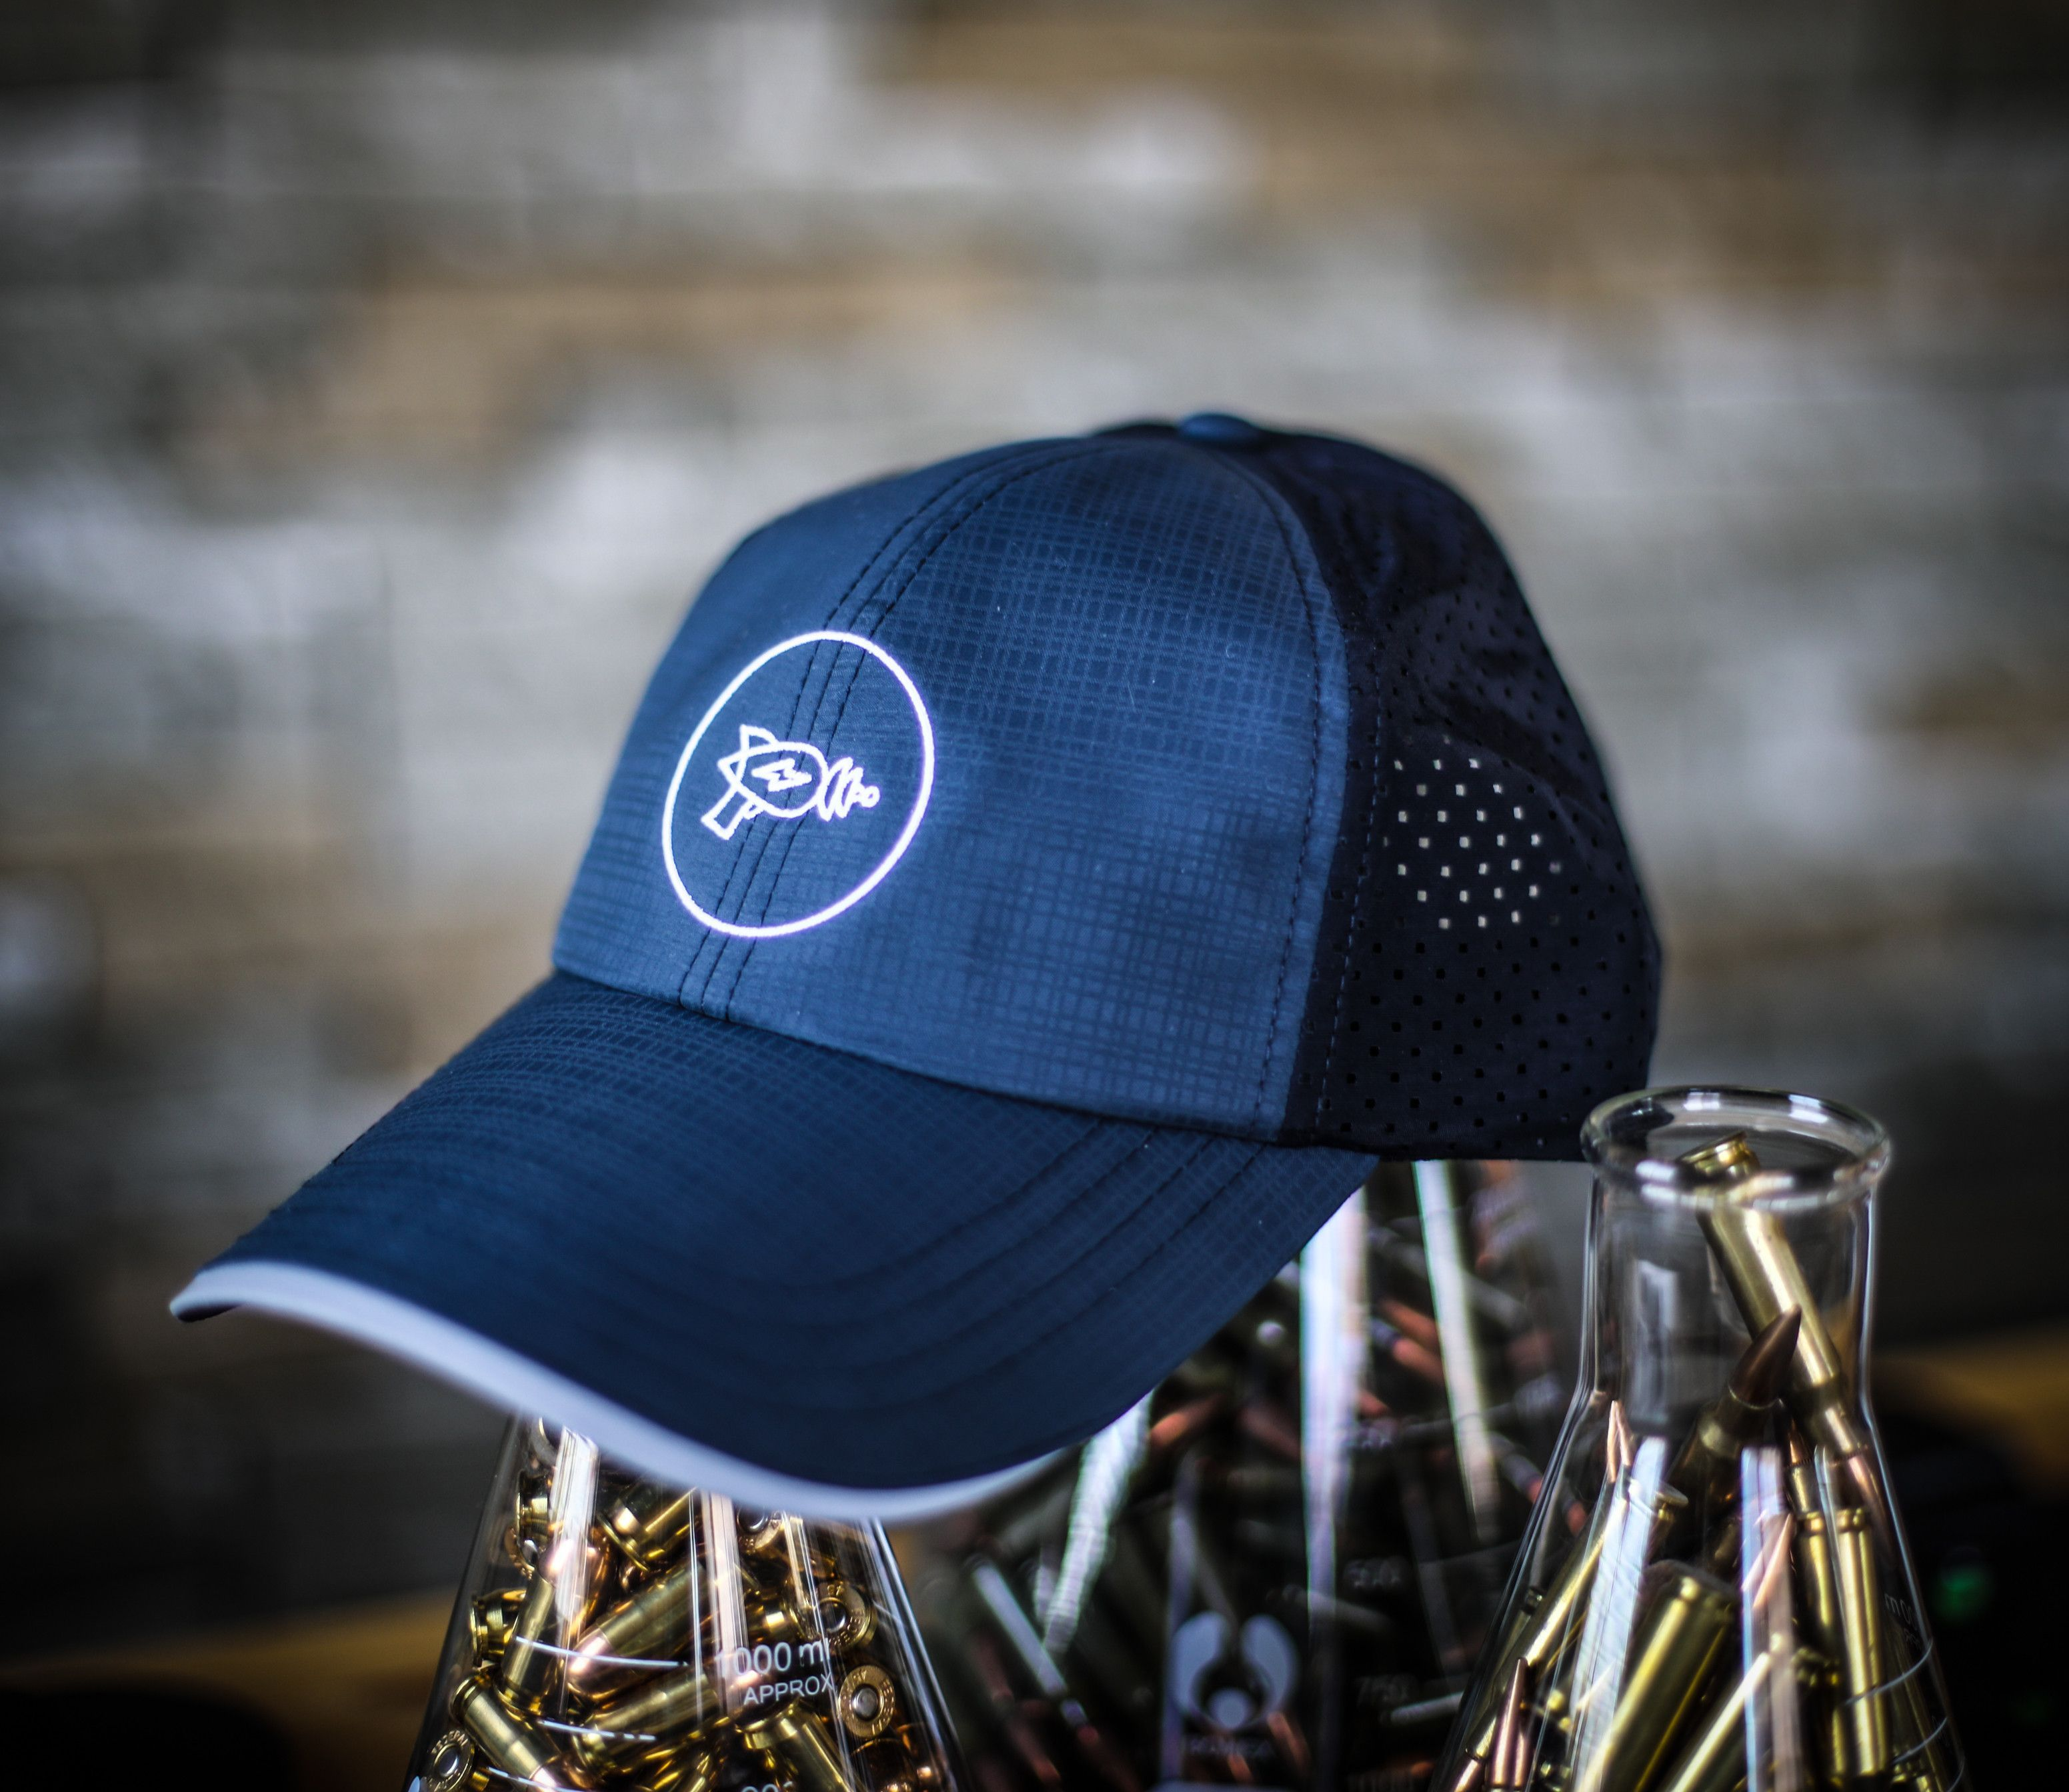 a3635862 Pew Pew Tactical Breathable & Water-Resistant Hat   Hat Designs ...